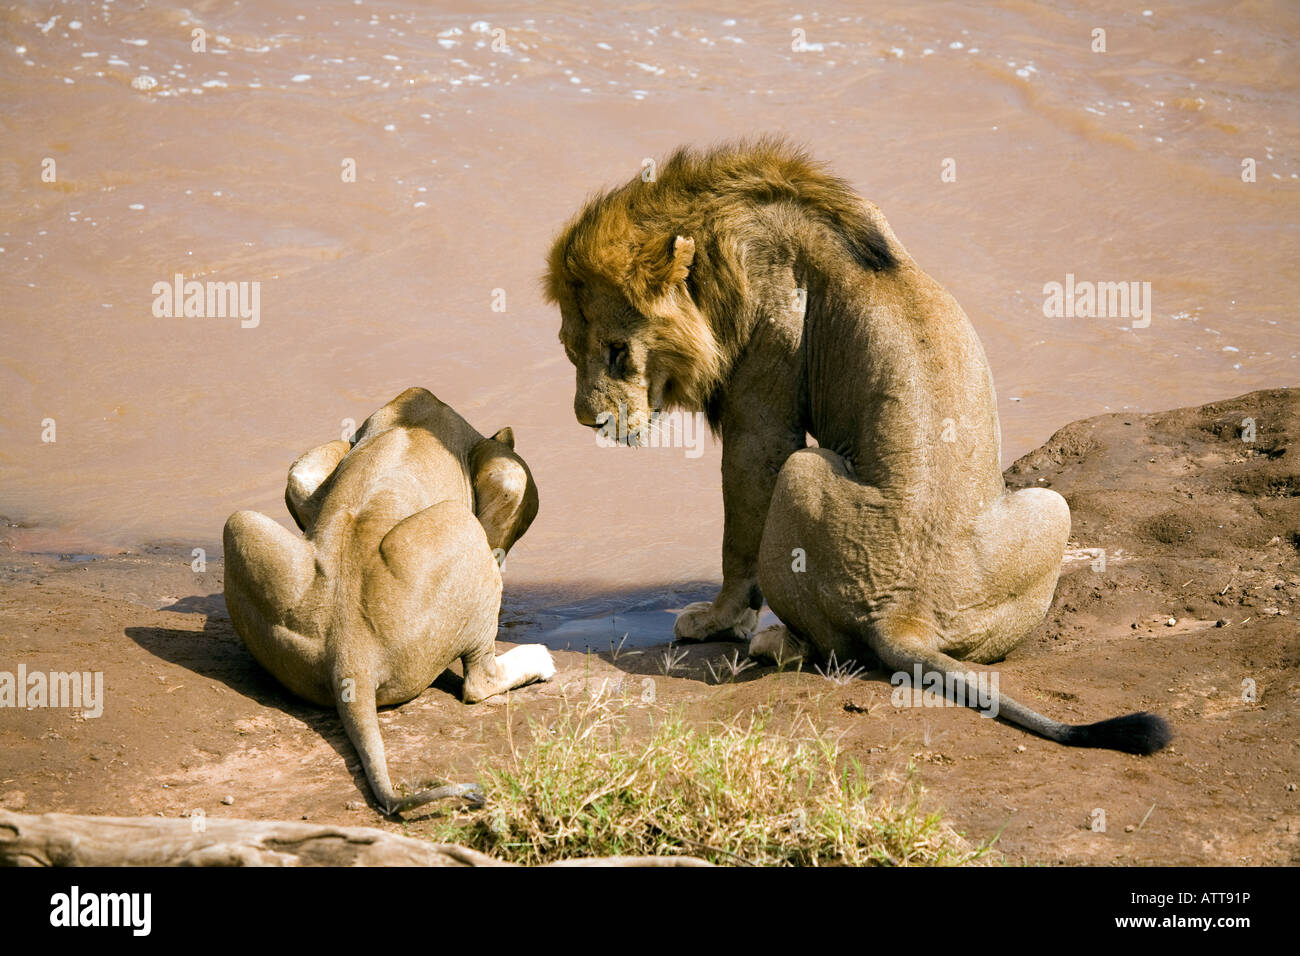 Lions (panthera leo) in courtship pre-mating, Samburu, Kenya - Stock Image